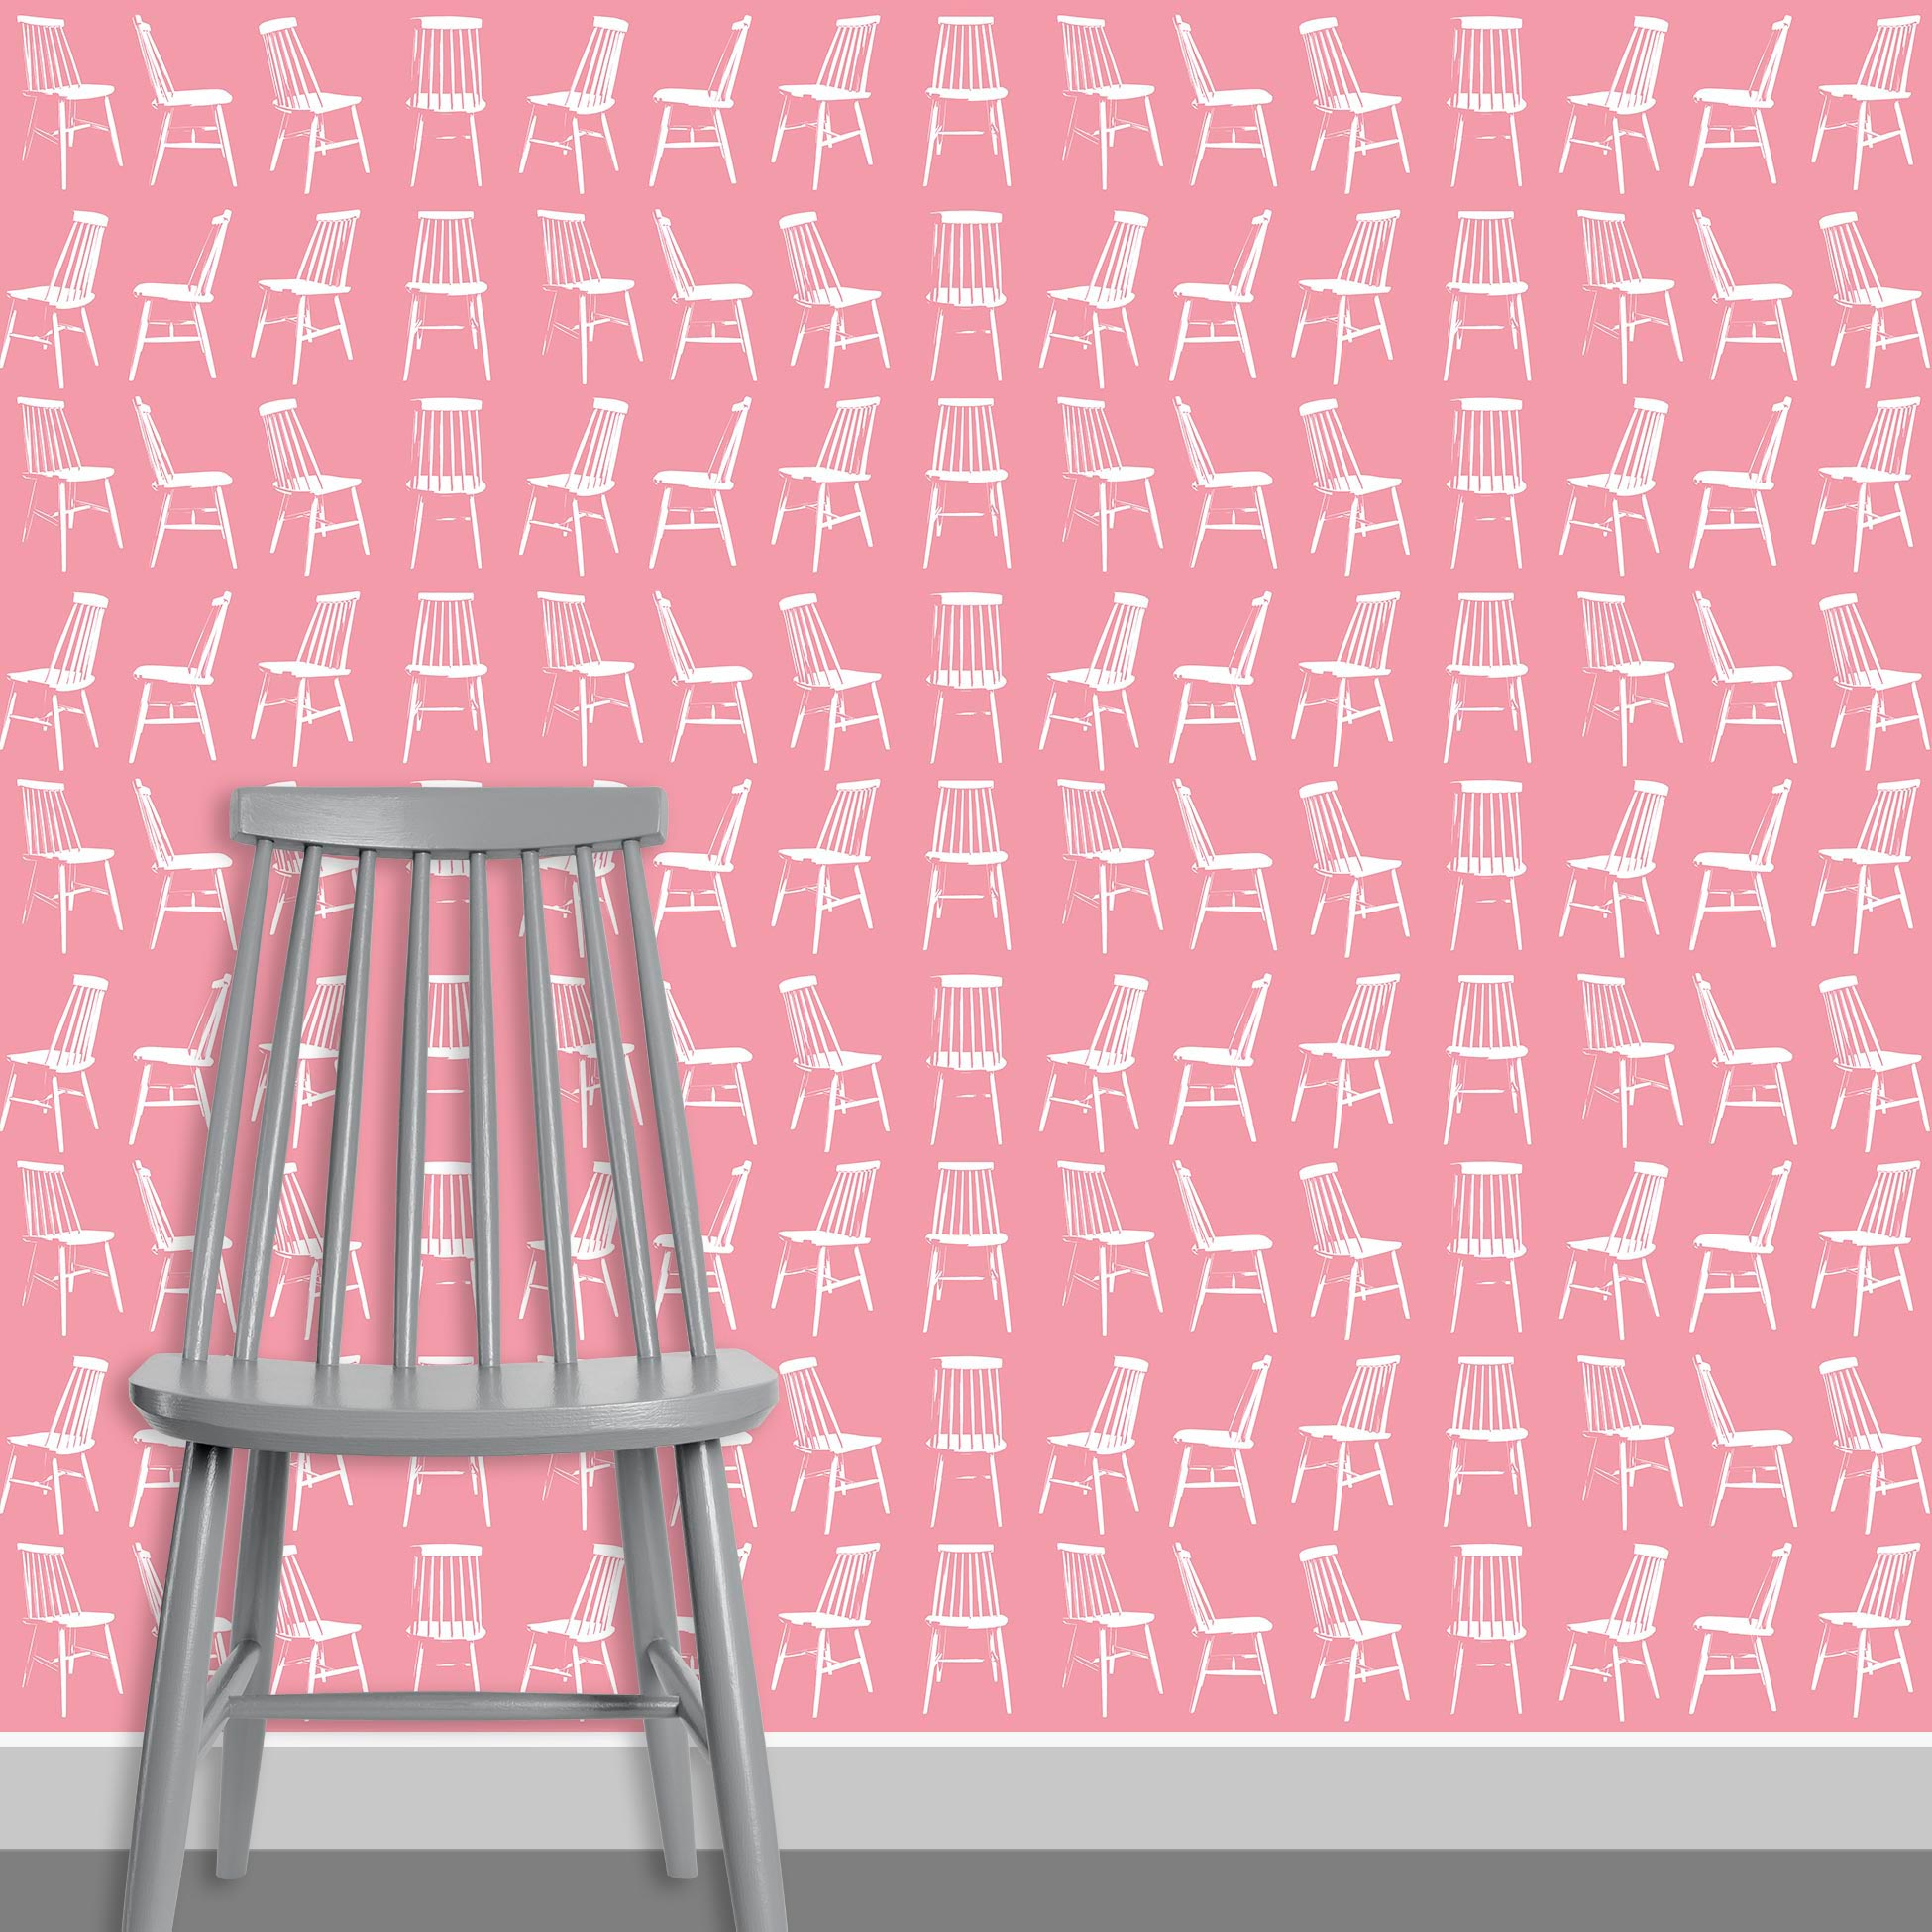 Contact Page Square - Mid Century Modern Chairs Pattern Design 1